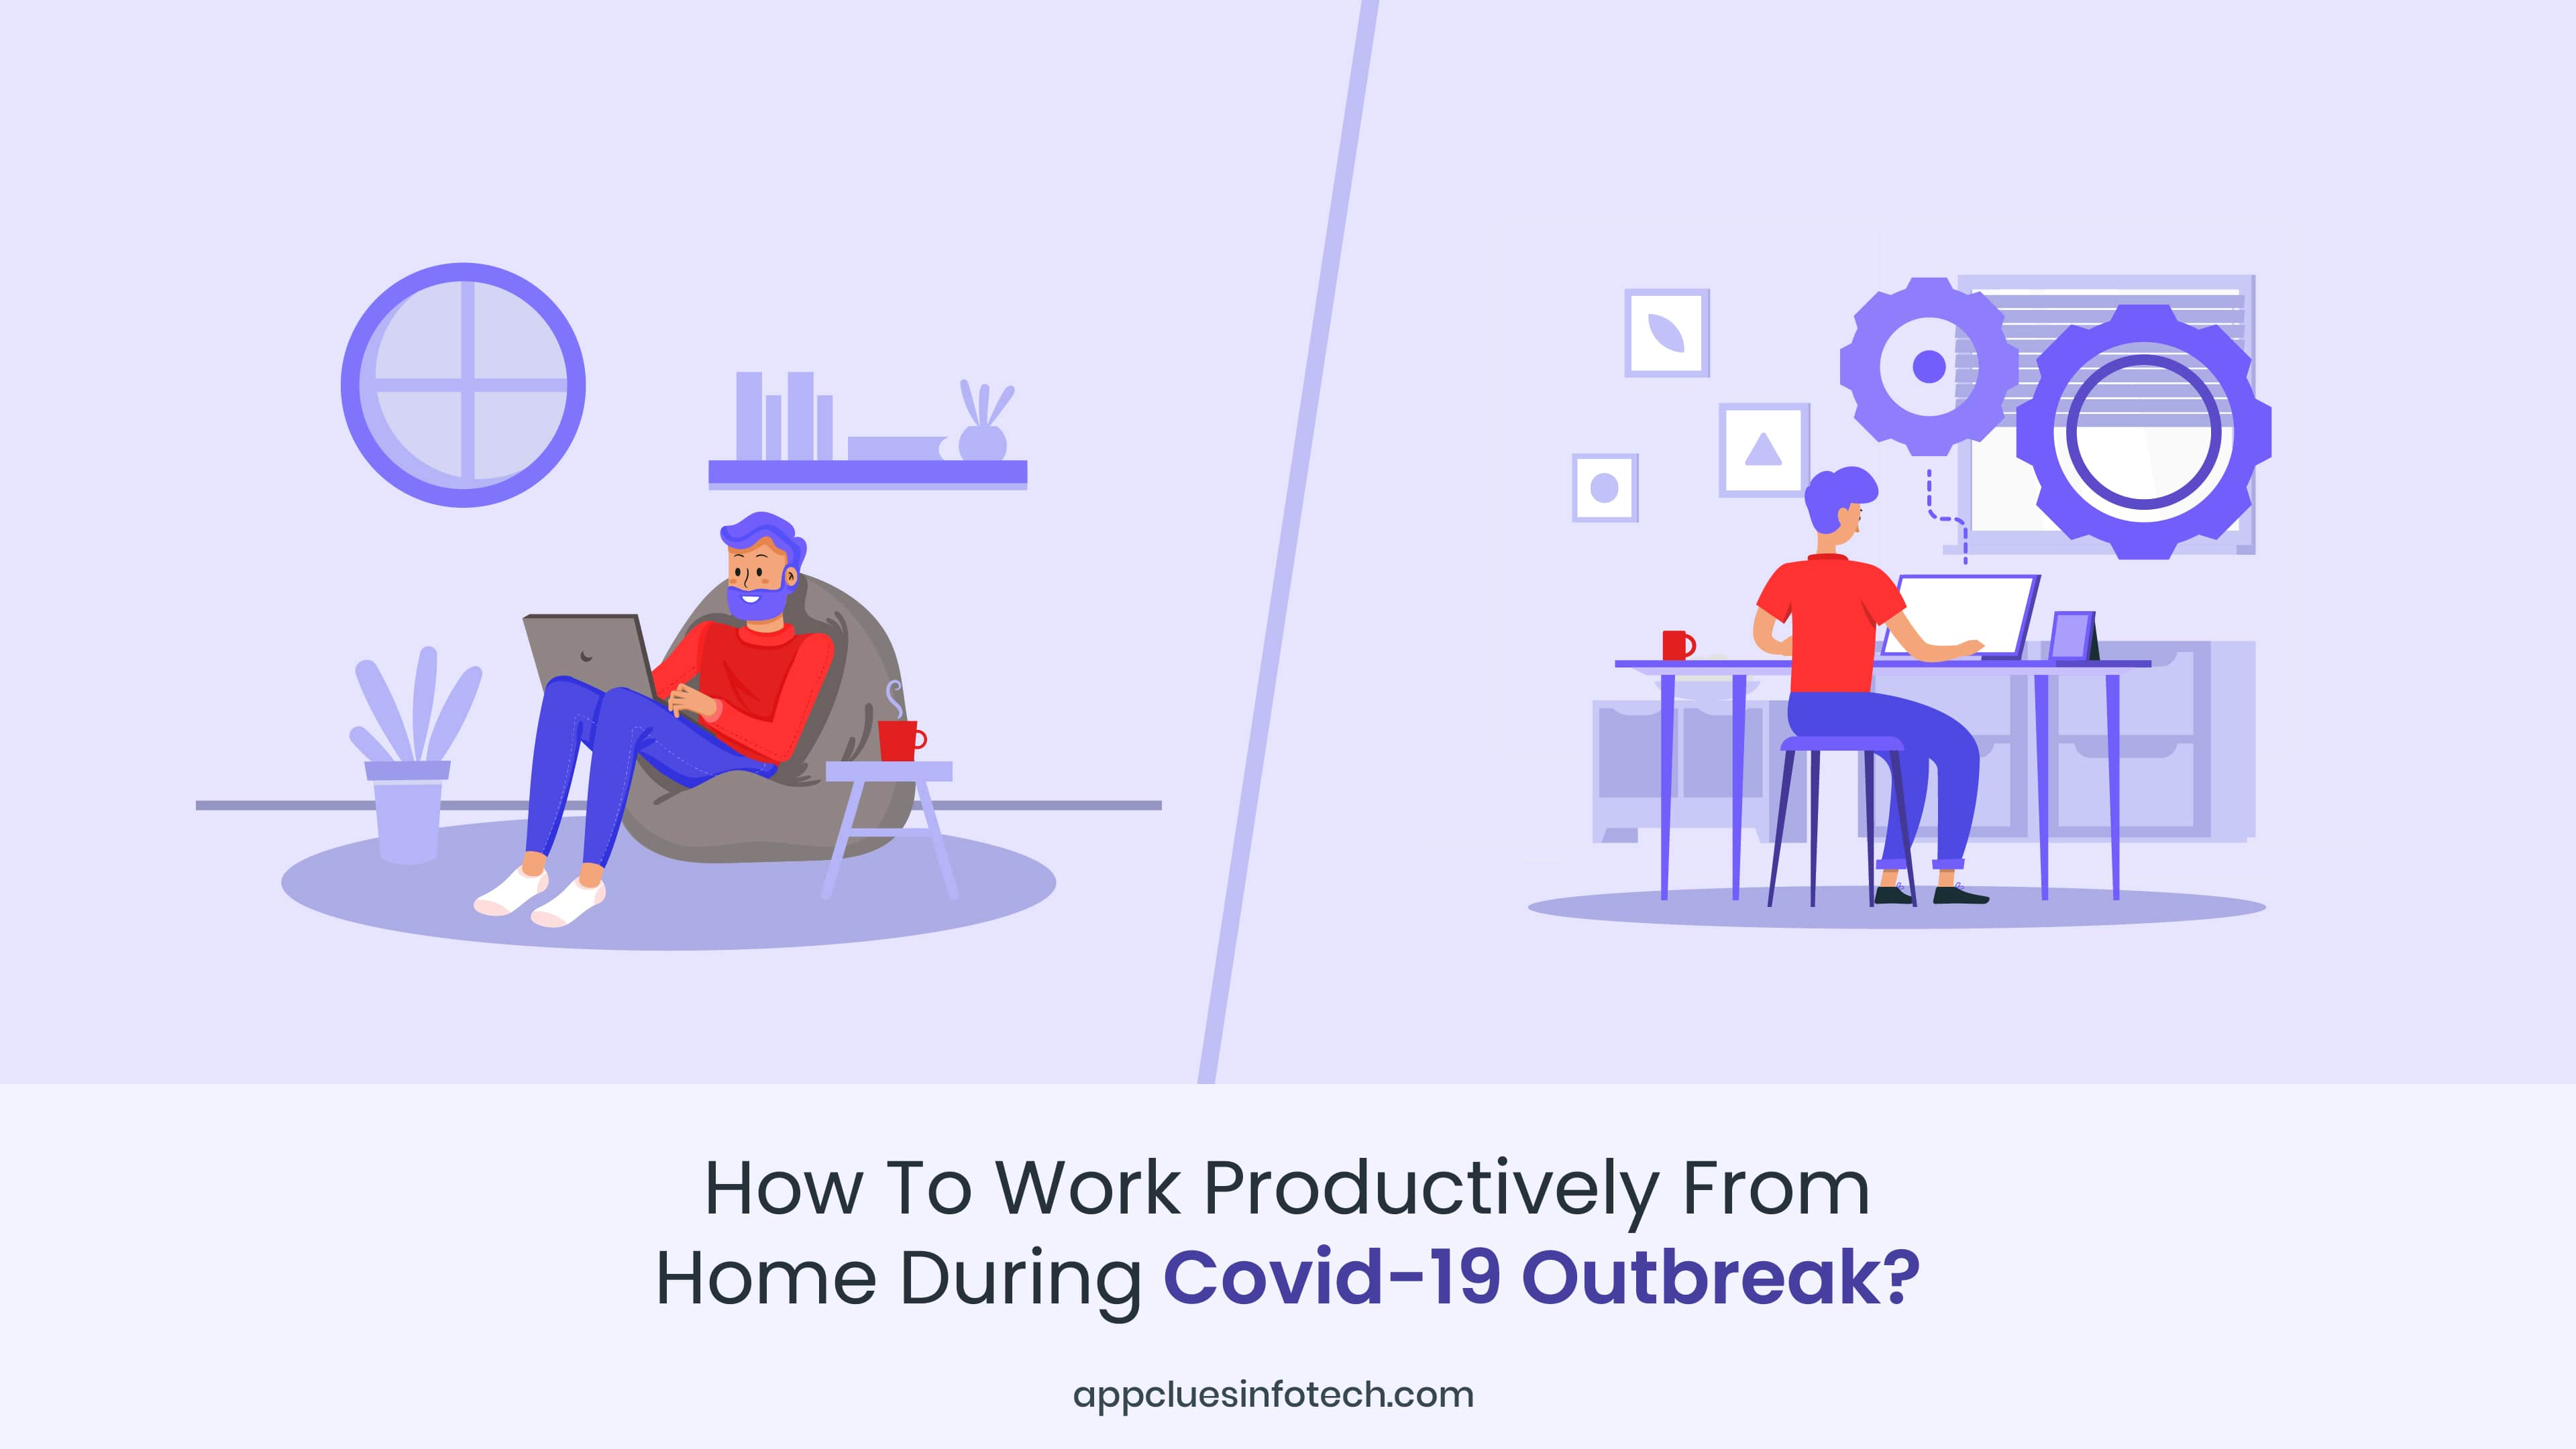 How to Work Productively From Home During COVID-19 Outbreak?